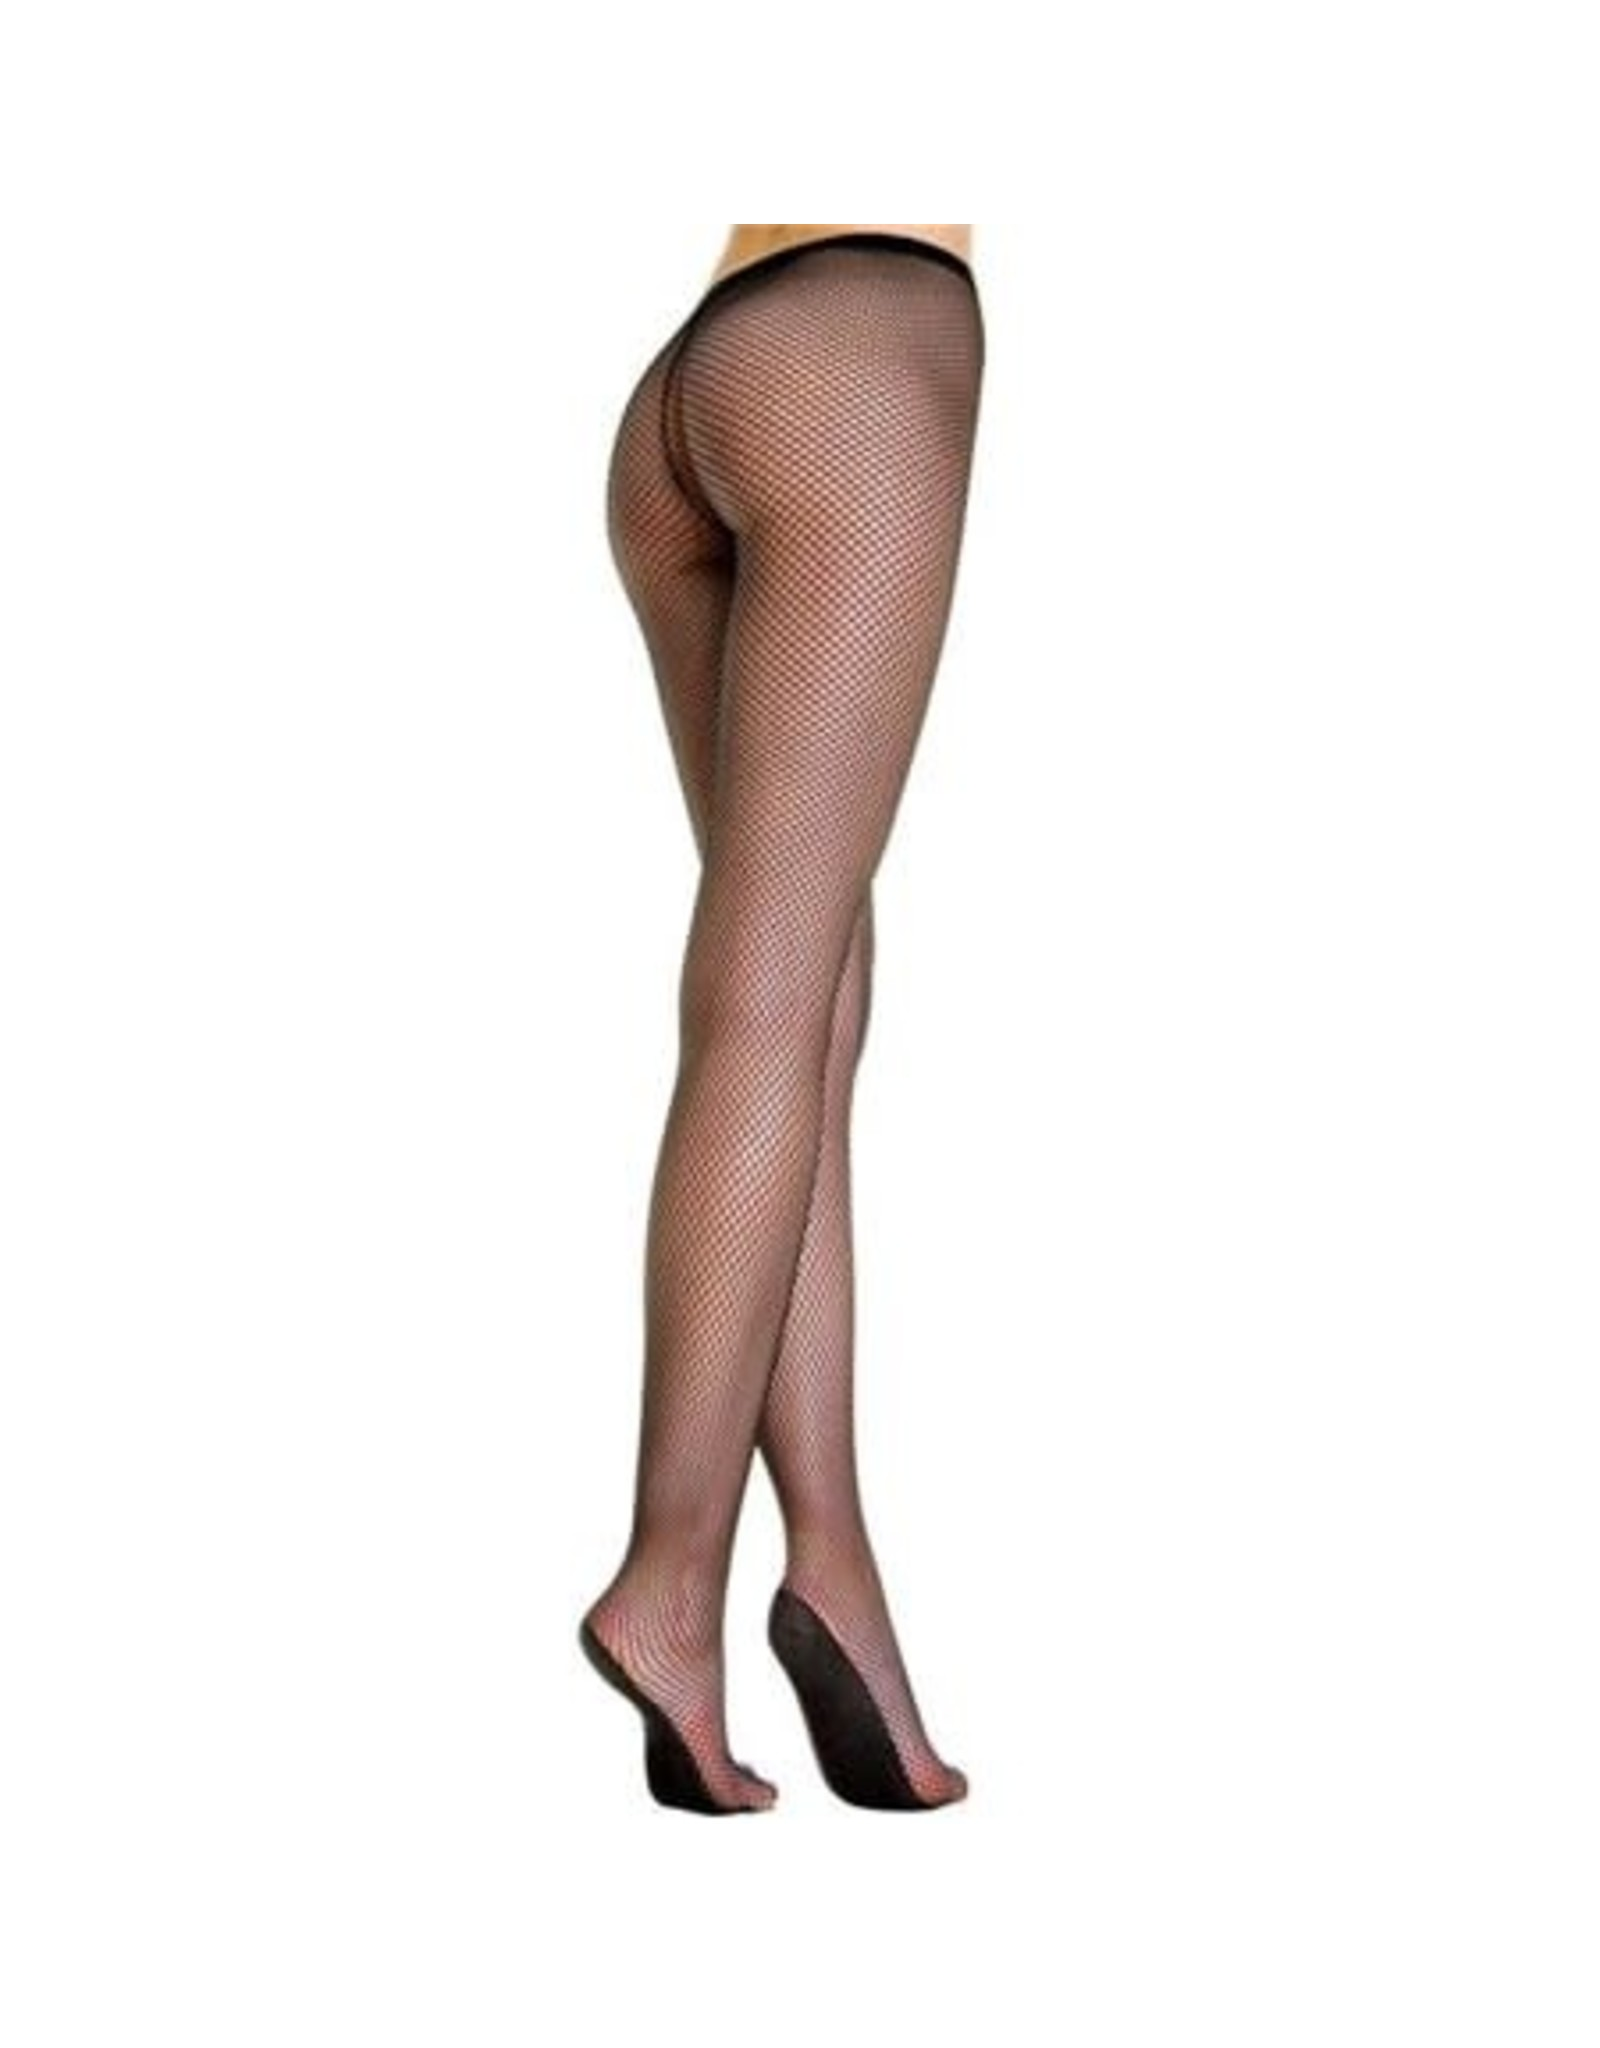 MUSIC LEGS - Spandex Fishnet Pantyhose Enforce Sole